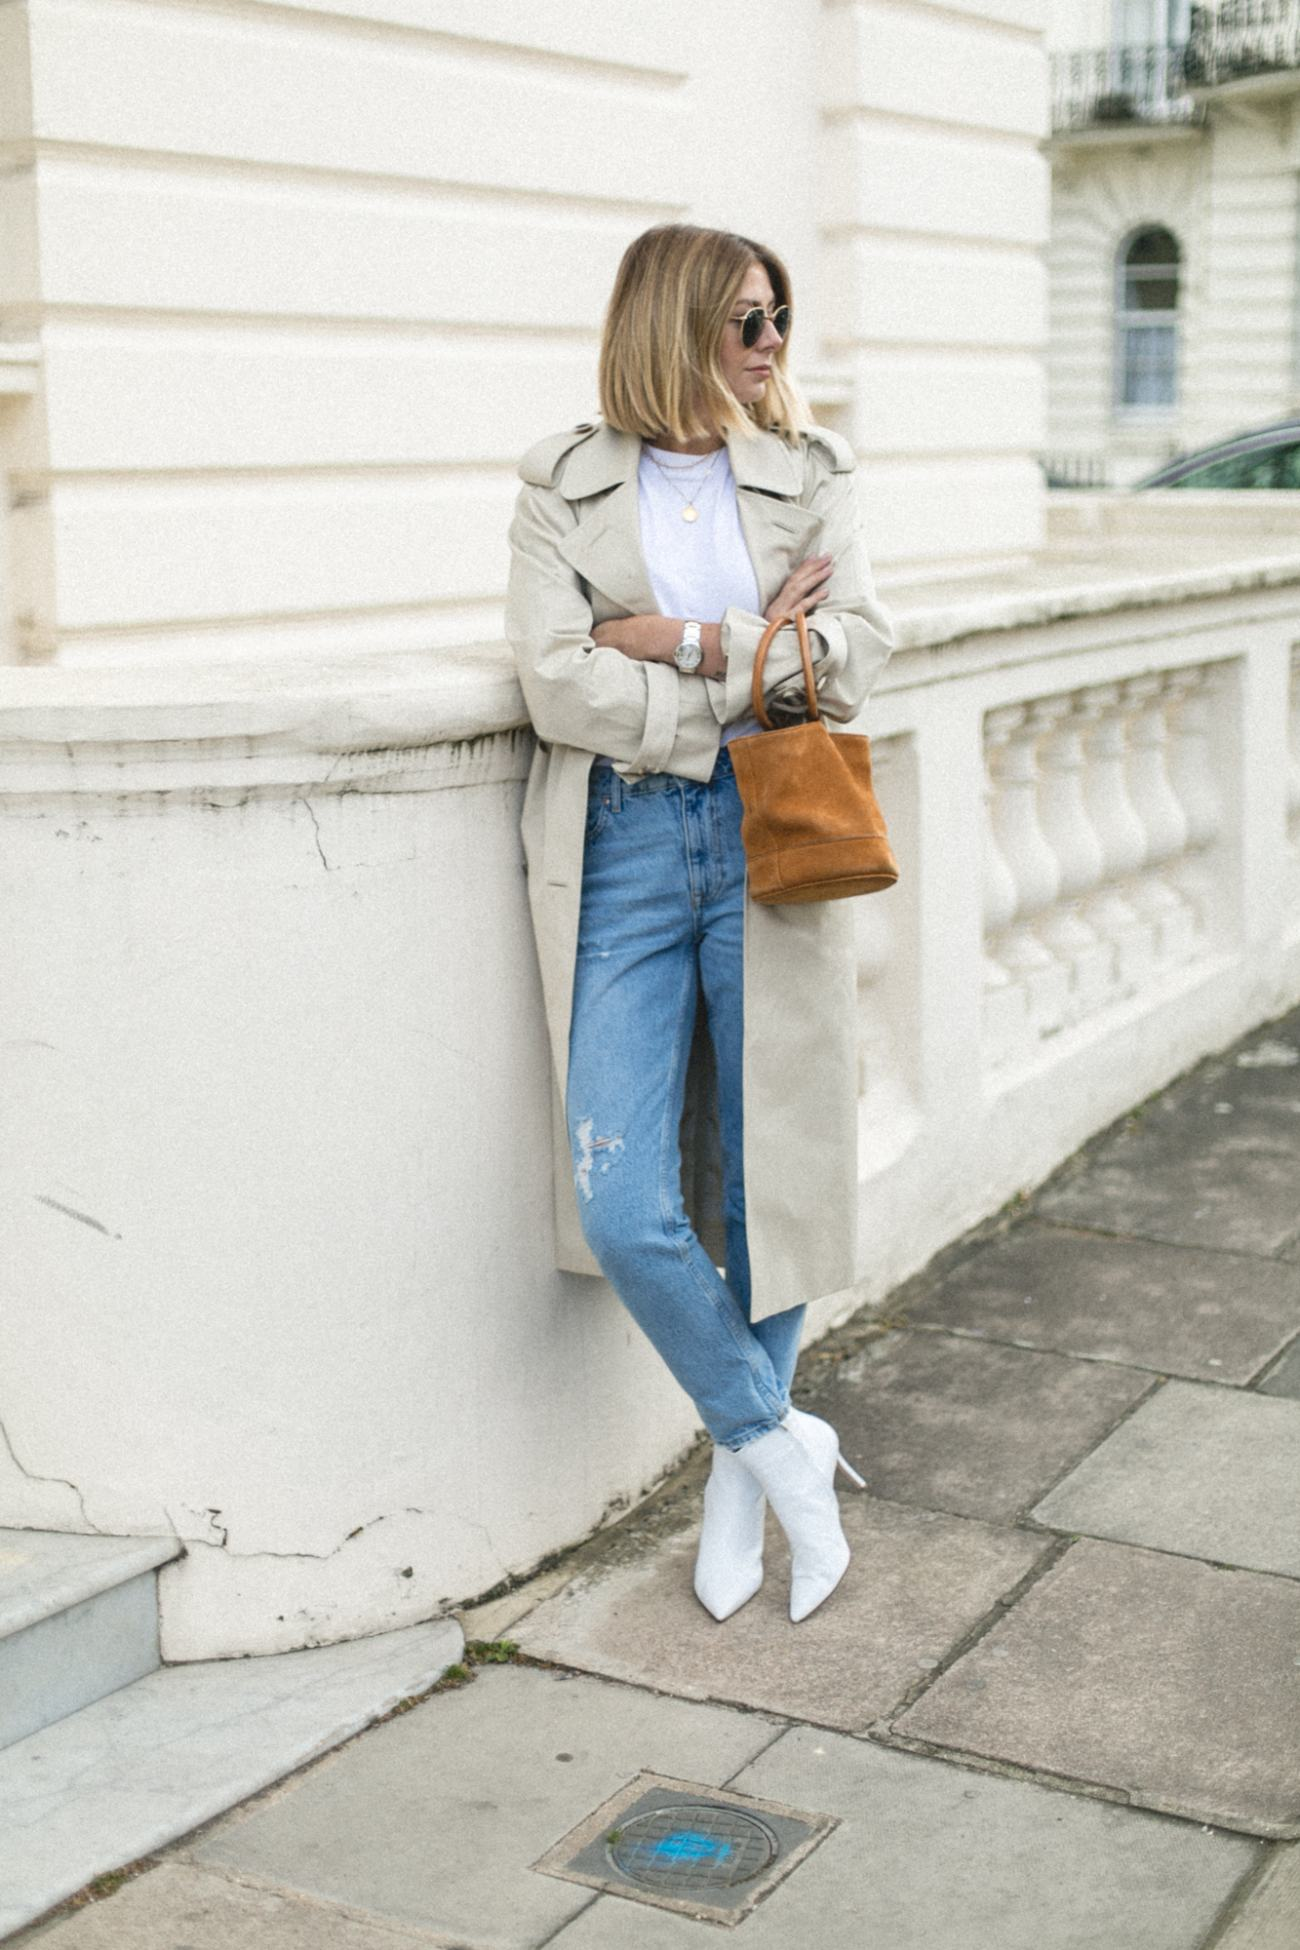 Emma Hill wearing Trench coat, light wash jeans, white ankle boots, Simon Miller tan nubuck Bonsai bucket bag, chic Spring outfit